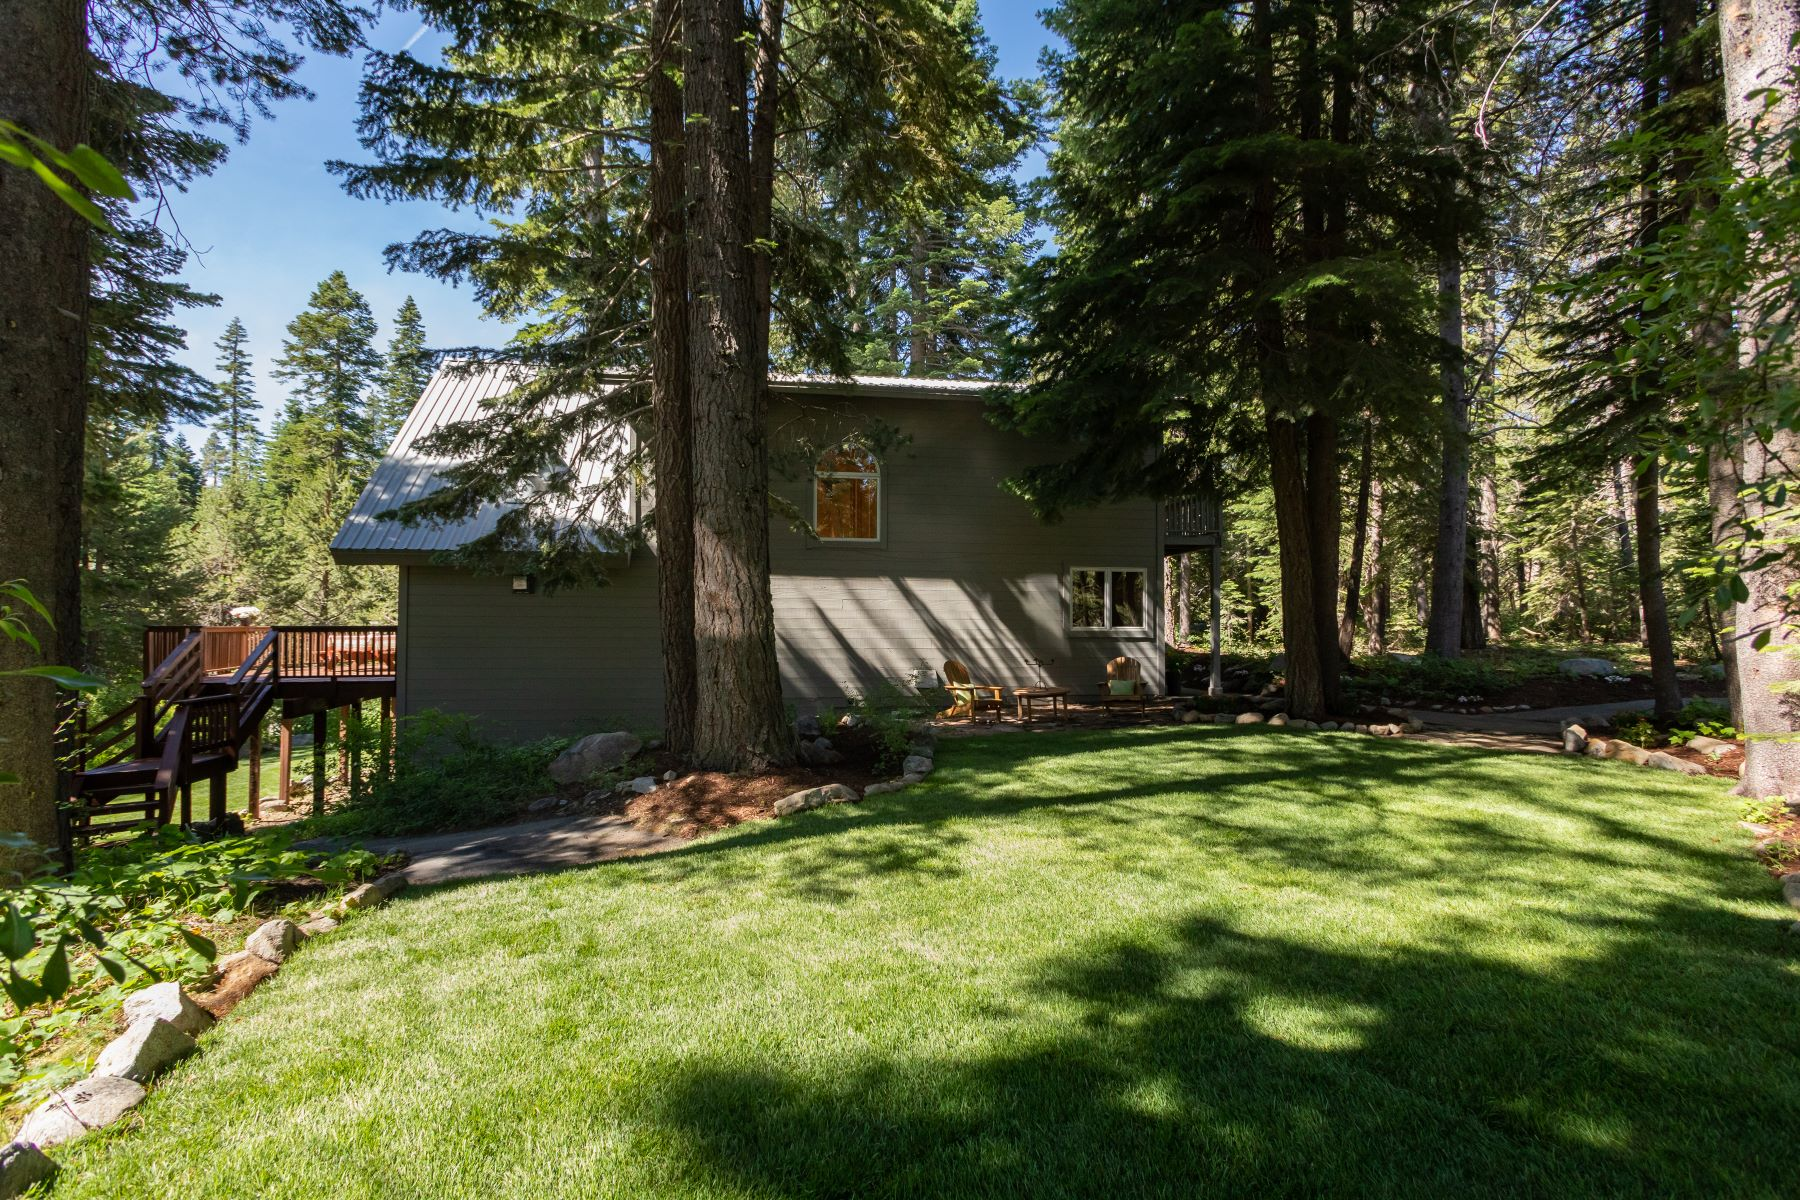 Additional photo for property listing at 6481 Marla Court, Tahoma, CA 96142 6481 Marla Court Tahoma, California 96142 Estados Unidos